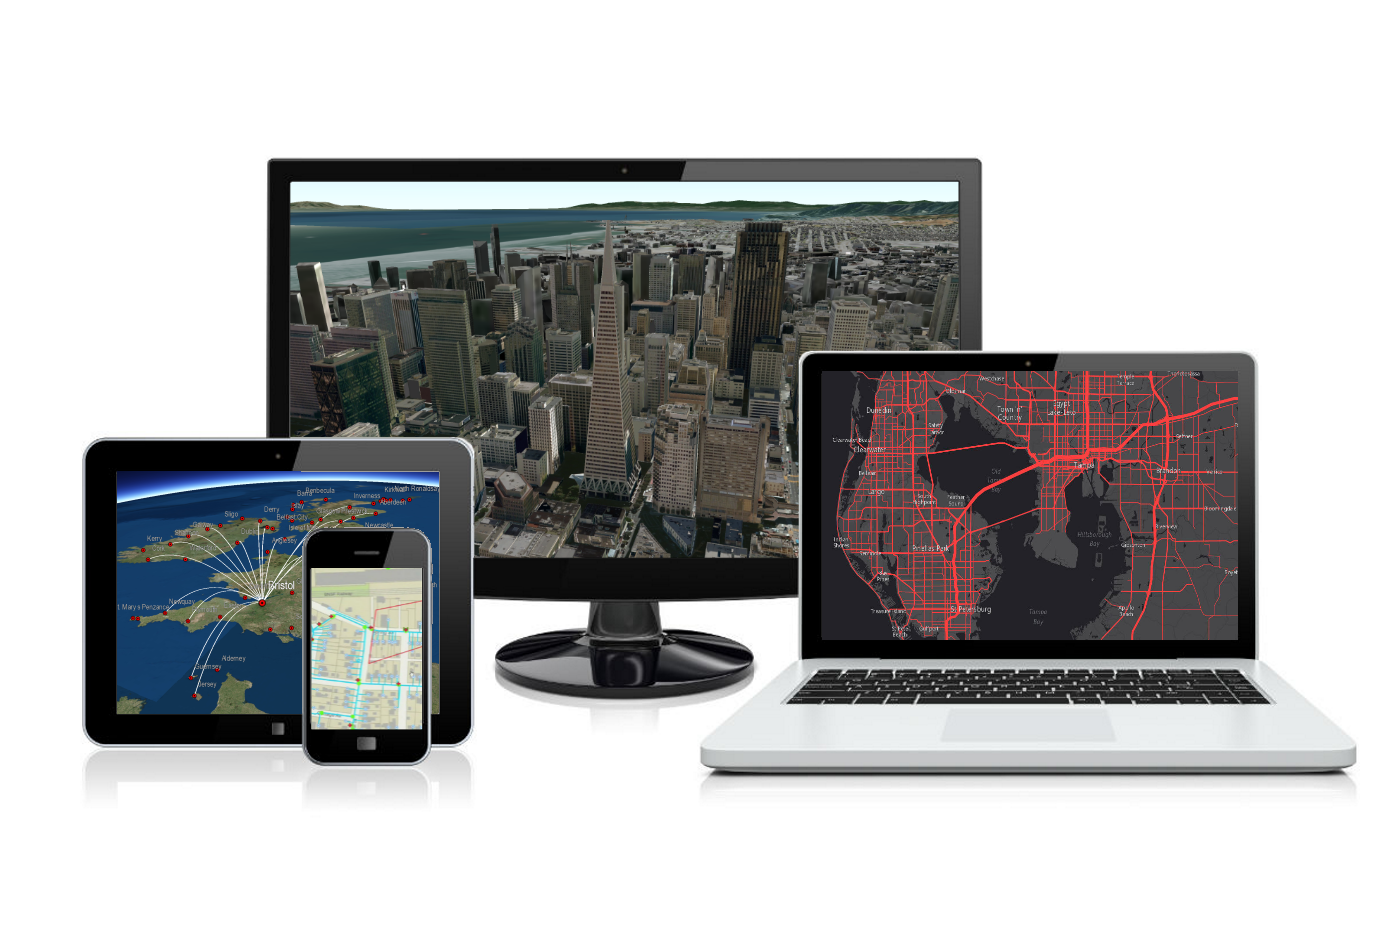 Gis Mapping Companies Esri Amp Pubnub Real Time Location Strategy Technology For